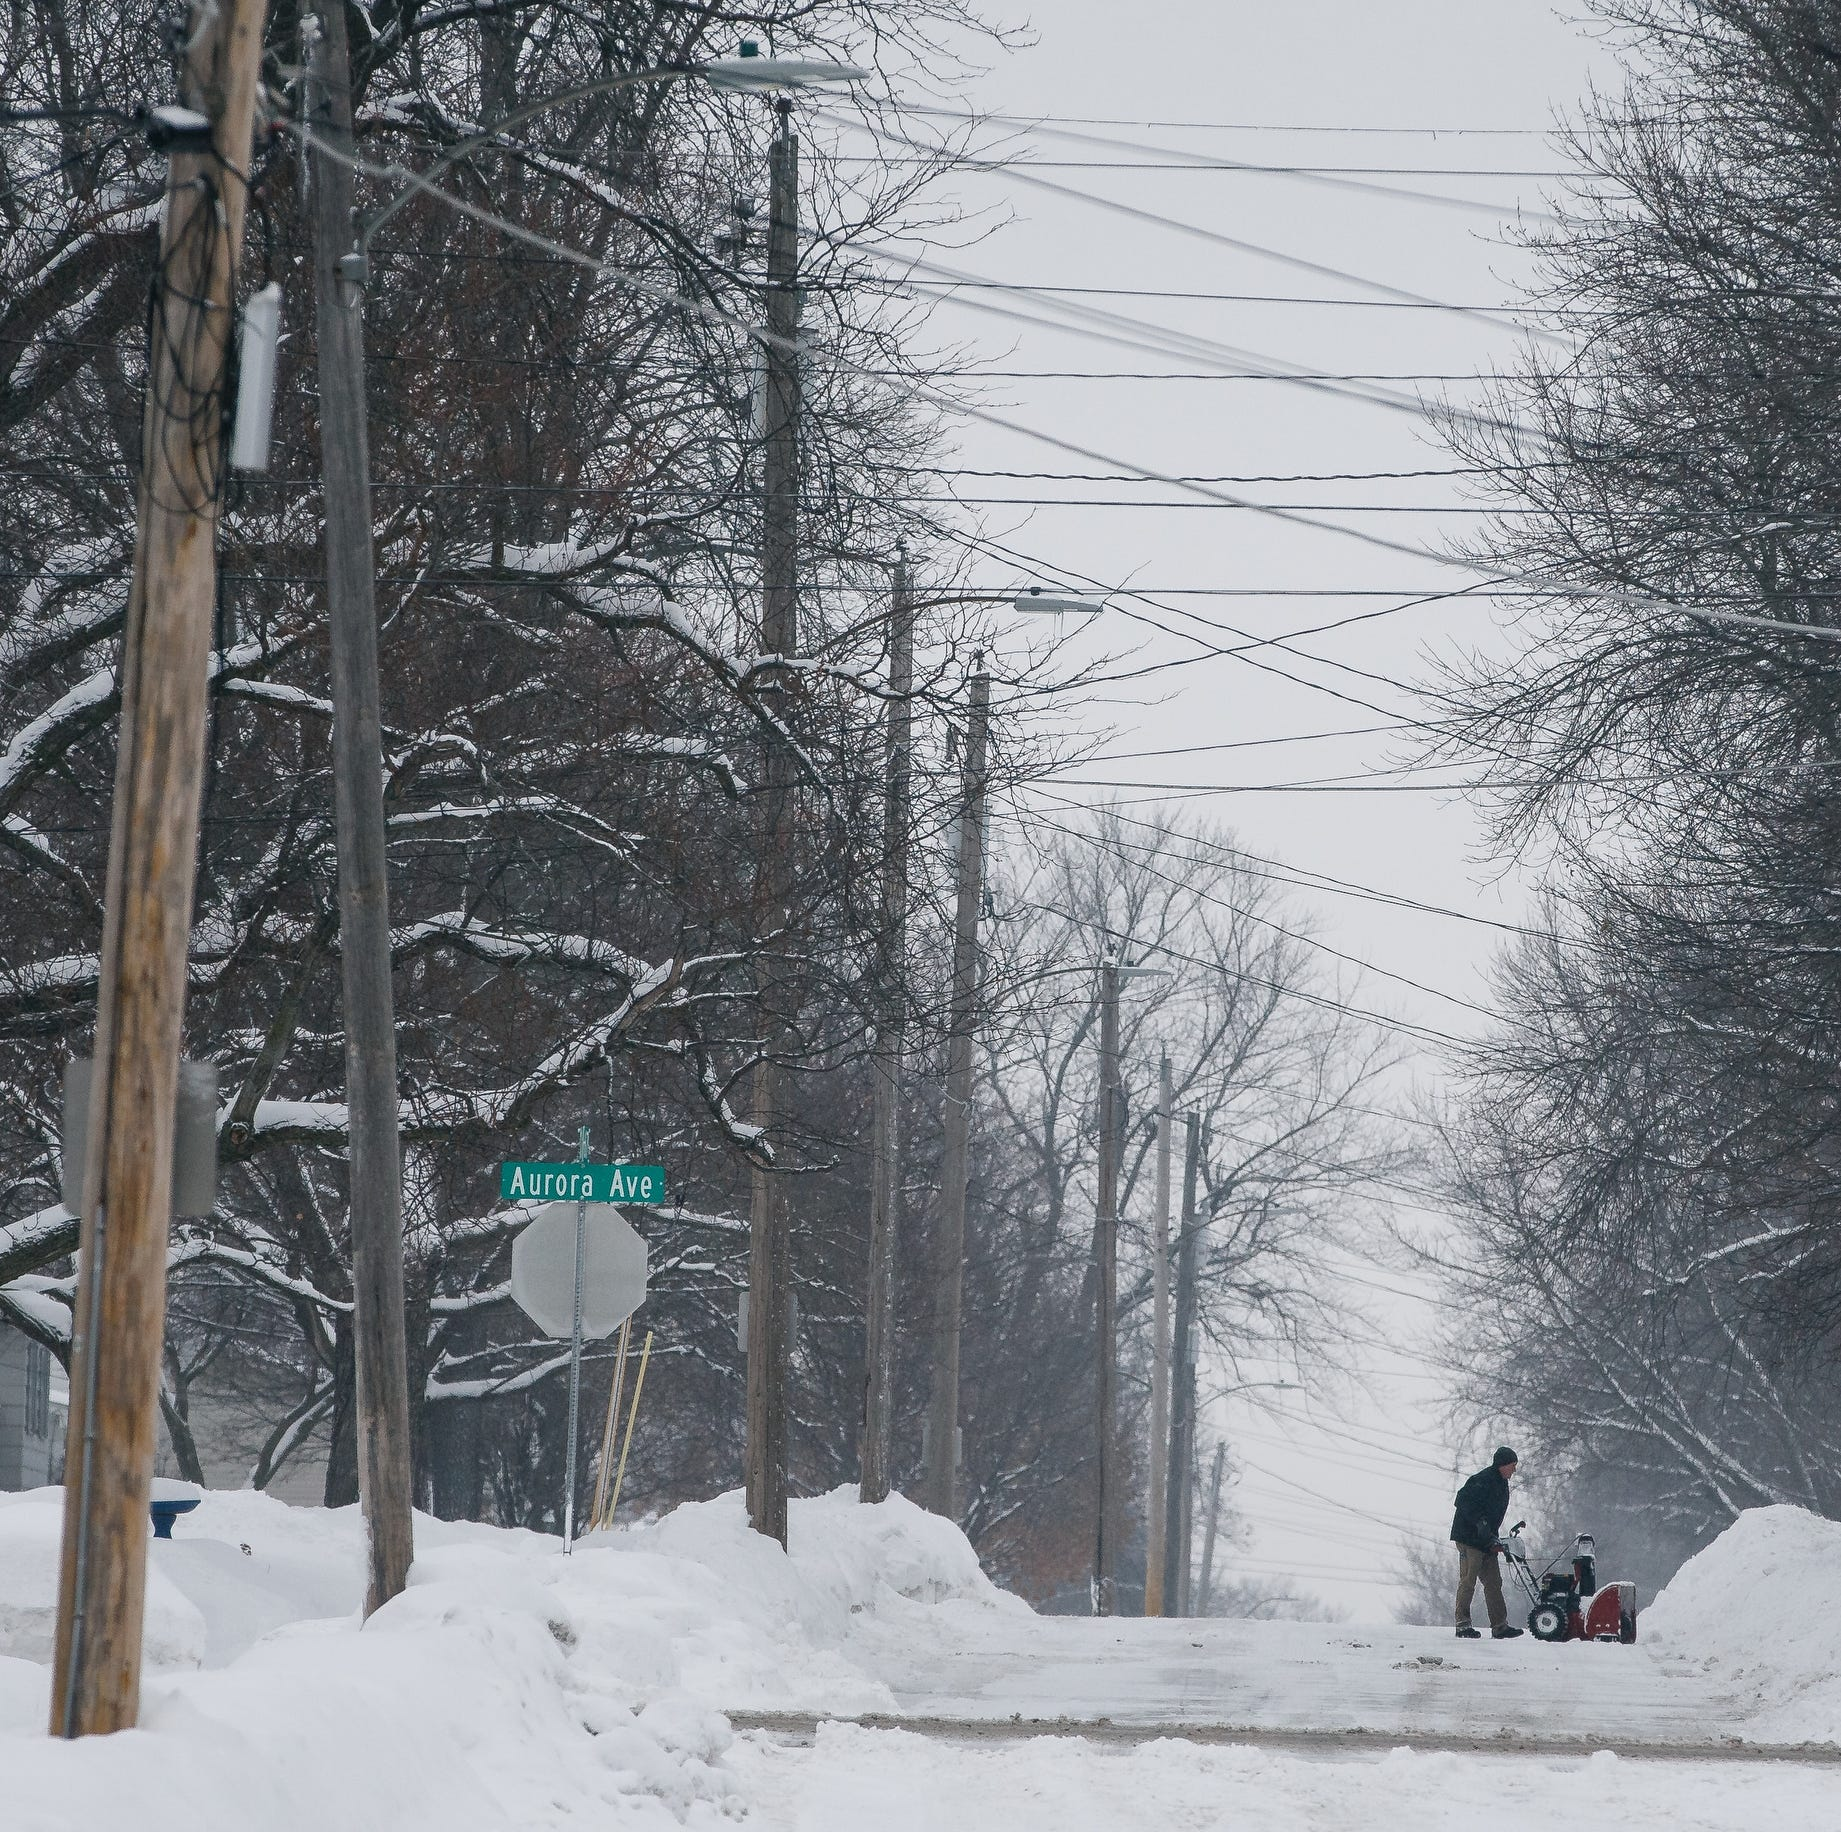 Des Moines and Waterloo win bragging rights for all the snow they shoveled in February